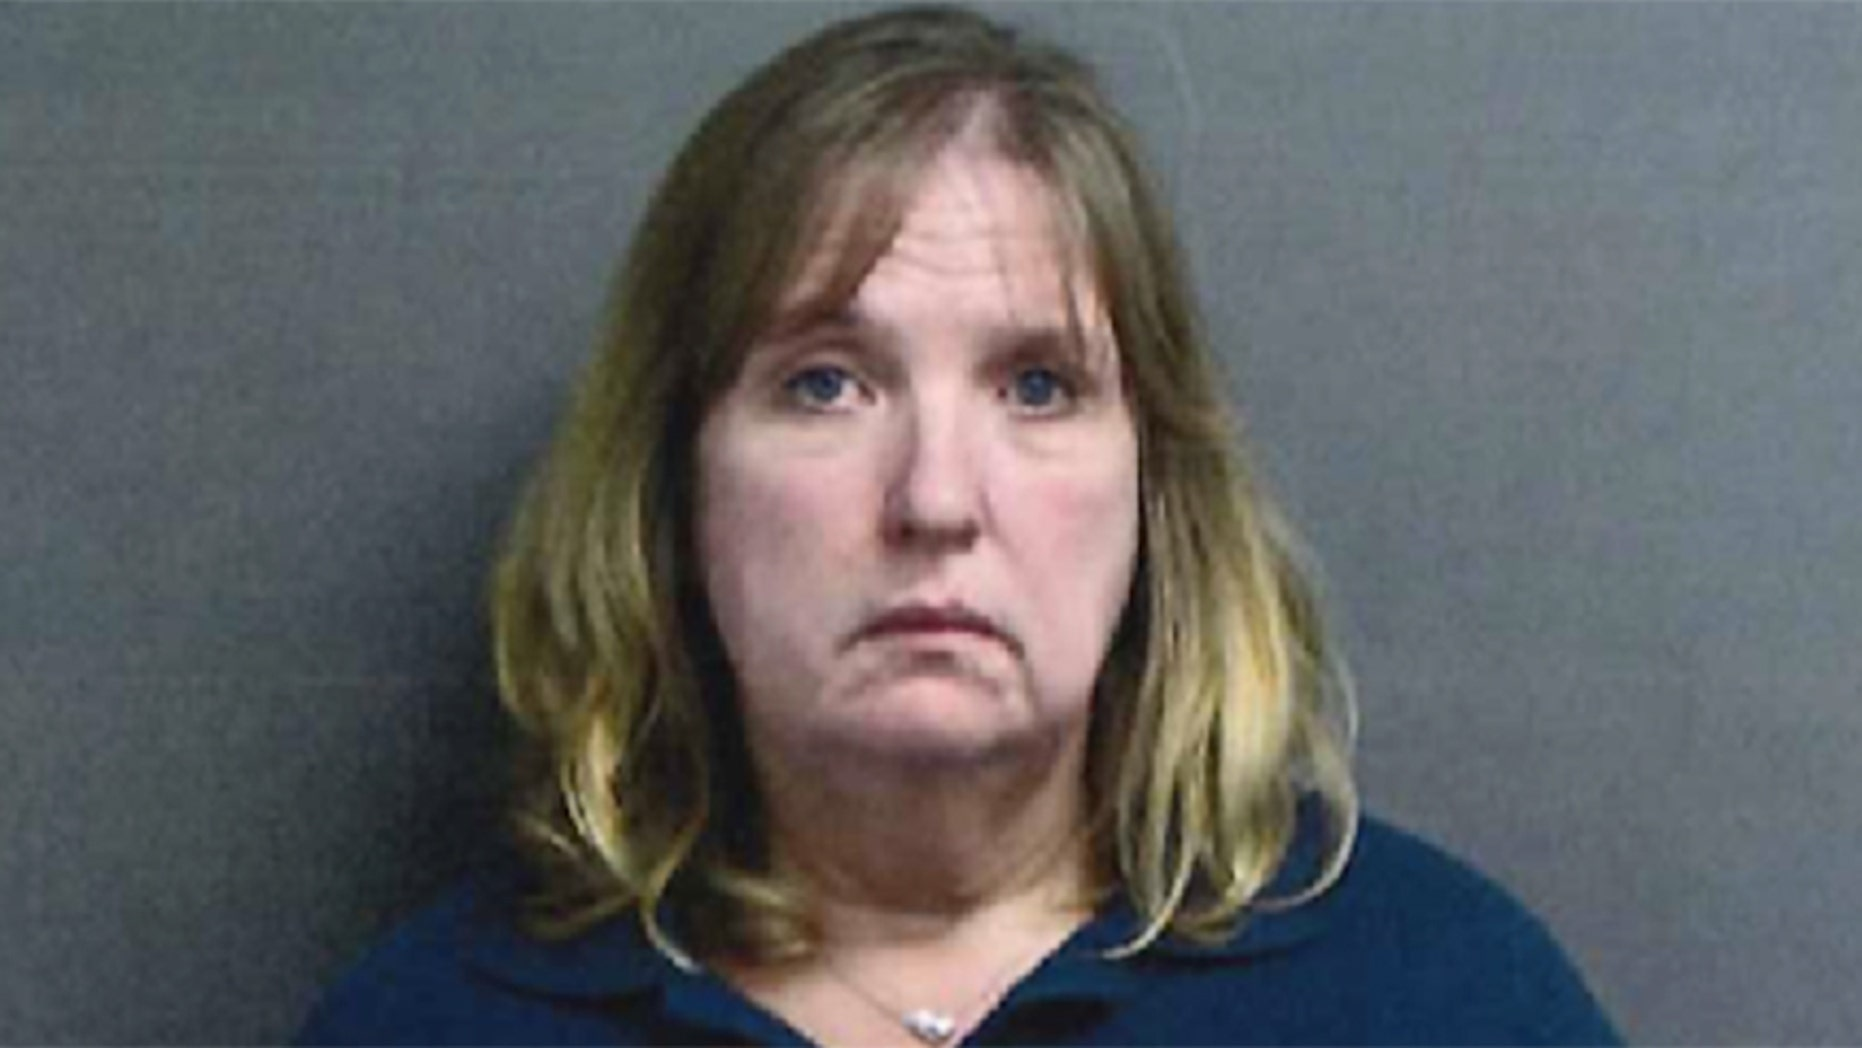 An Illinois school bus driver has been arrested after being caught with a blood-alcohol level of nearly three times the legal limit, prosecutors say.